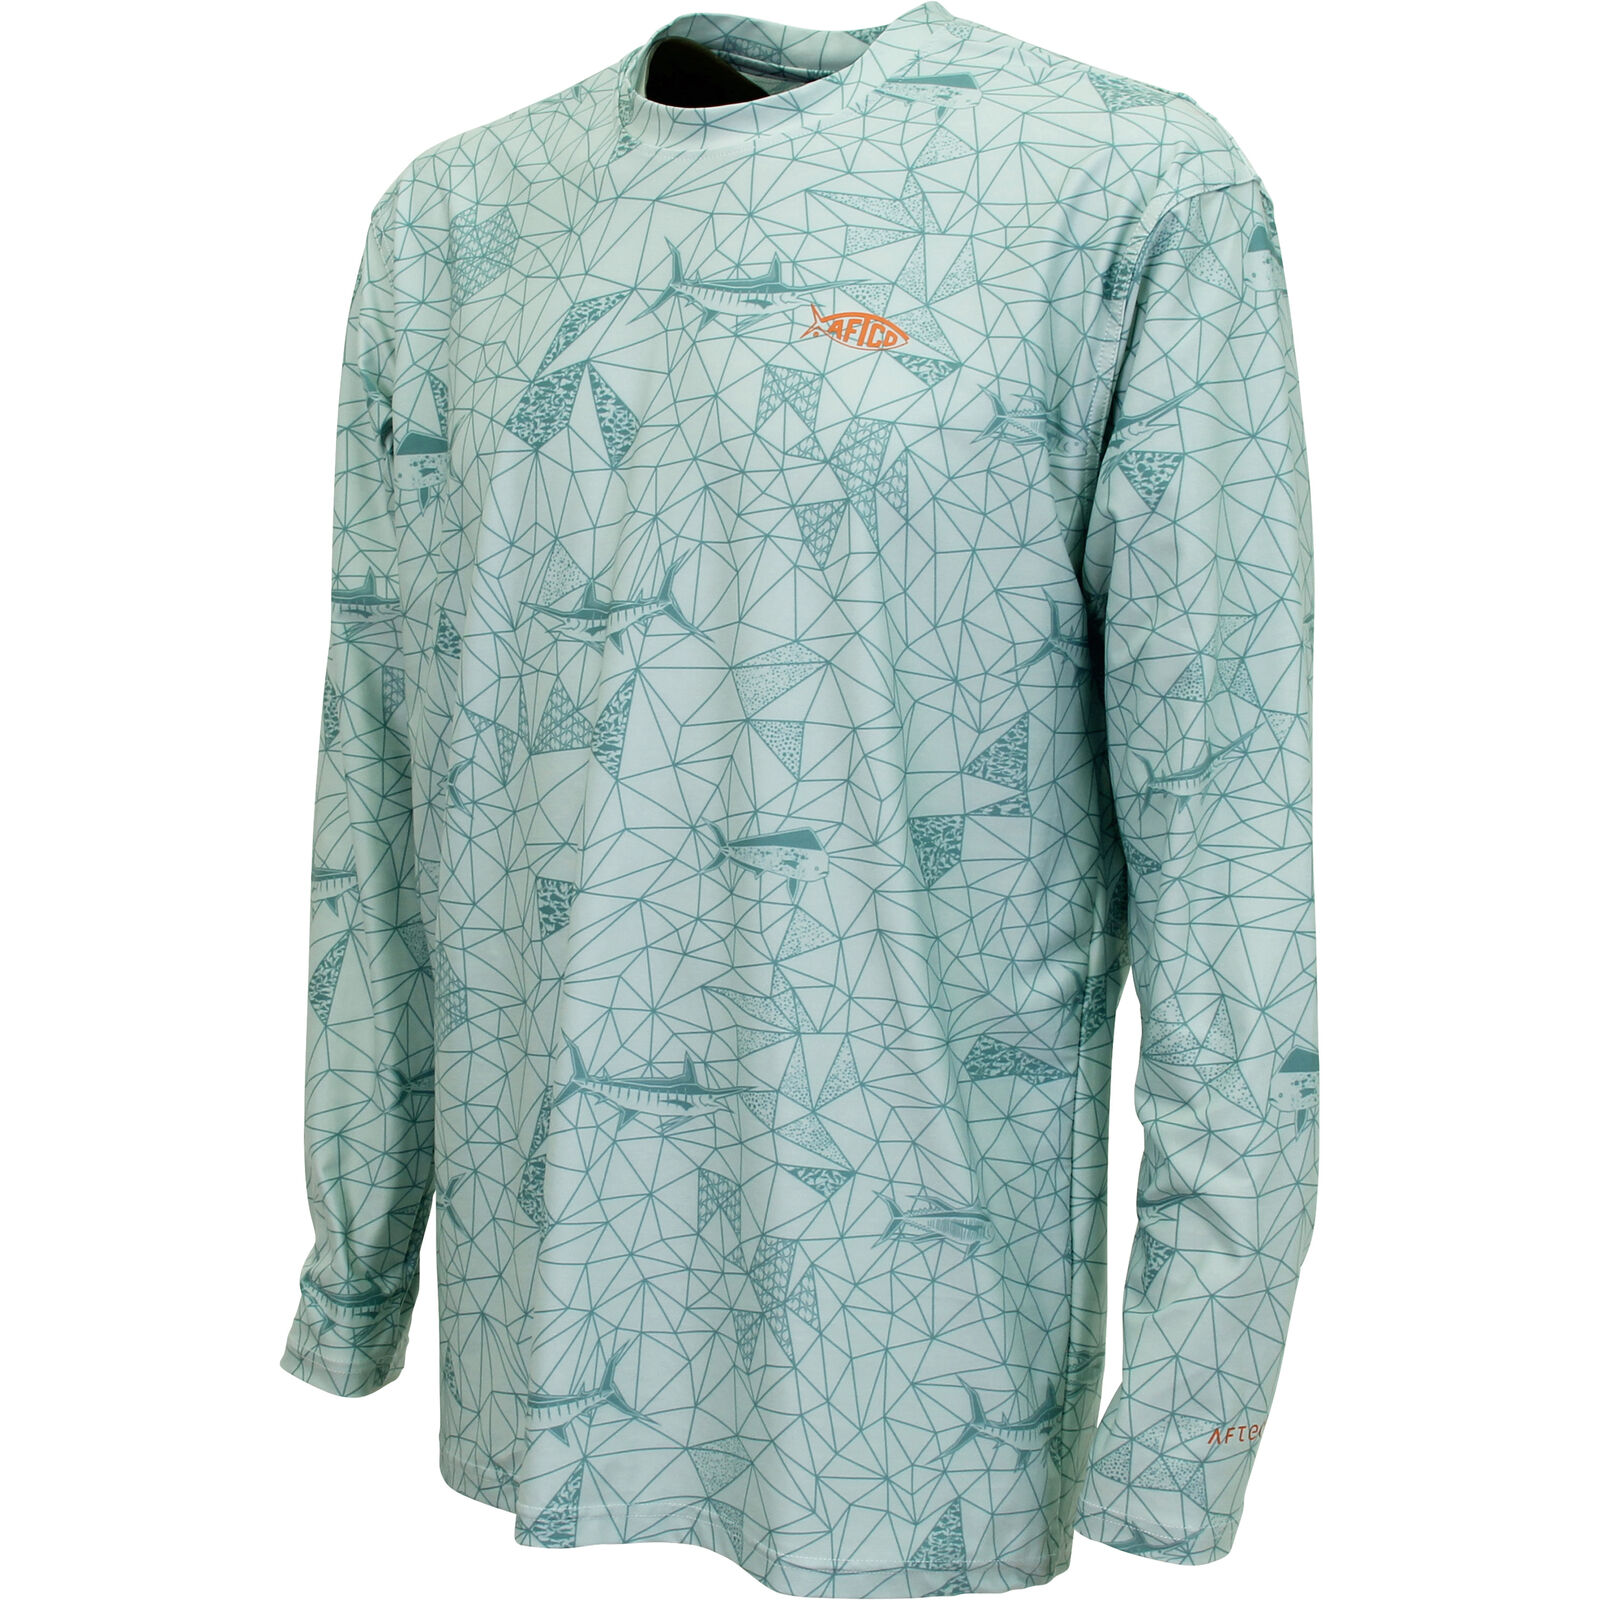 AFTCO Meisai Mens Long Sleeve Shirt, Moonstone, Small